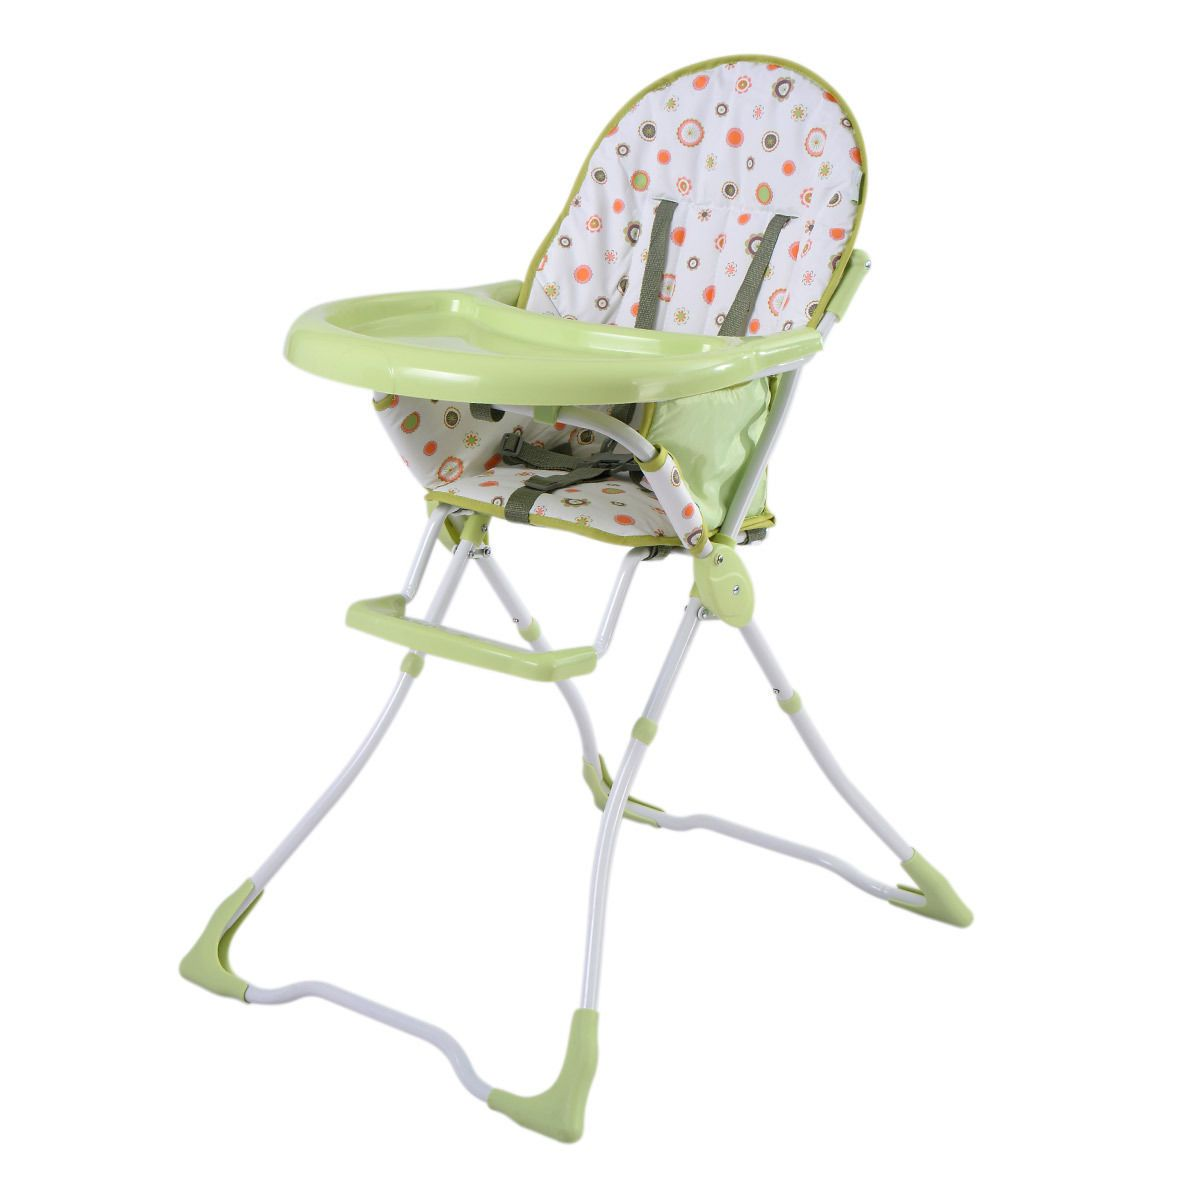 Baby Food Chair Green Baby High Chair Infant Toddler Feeding Booster Seat Portable